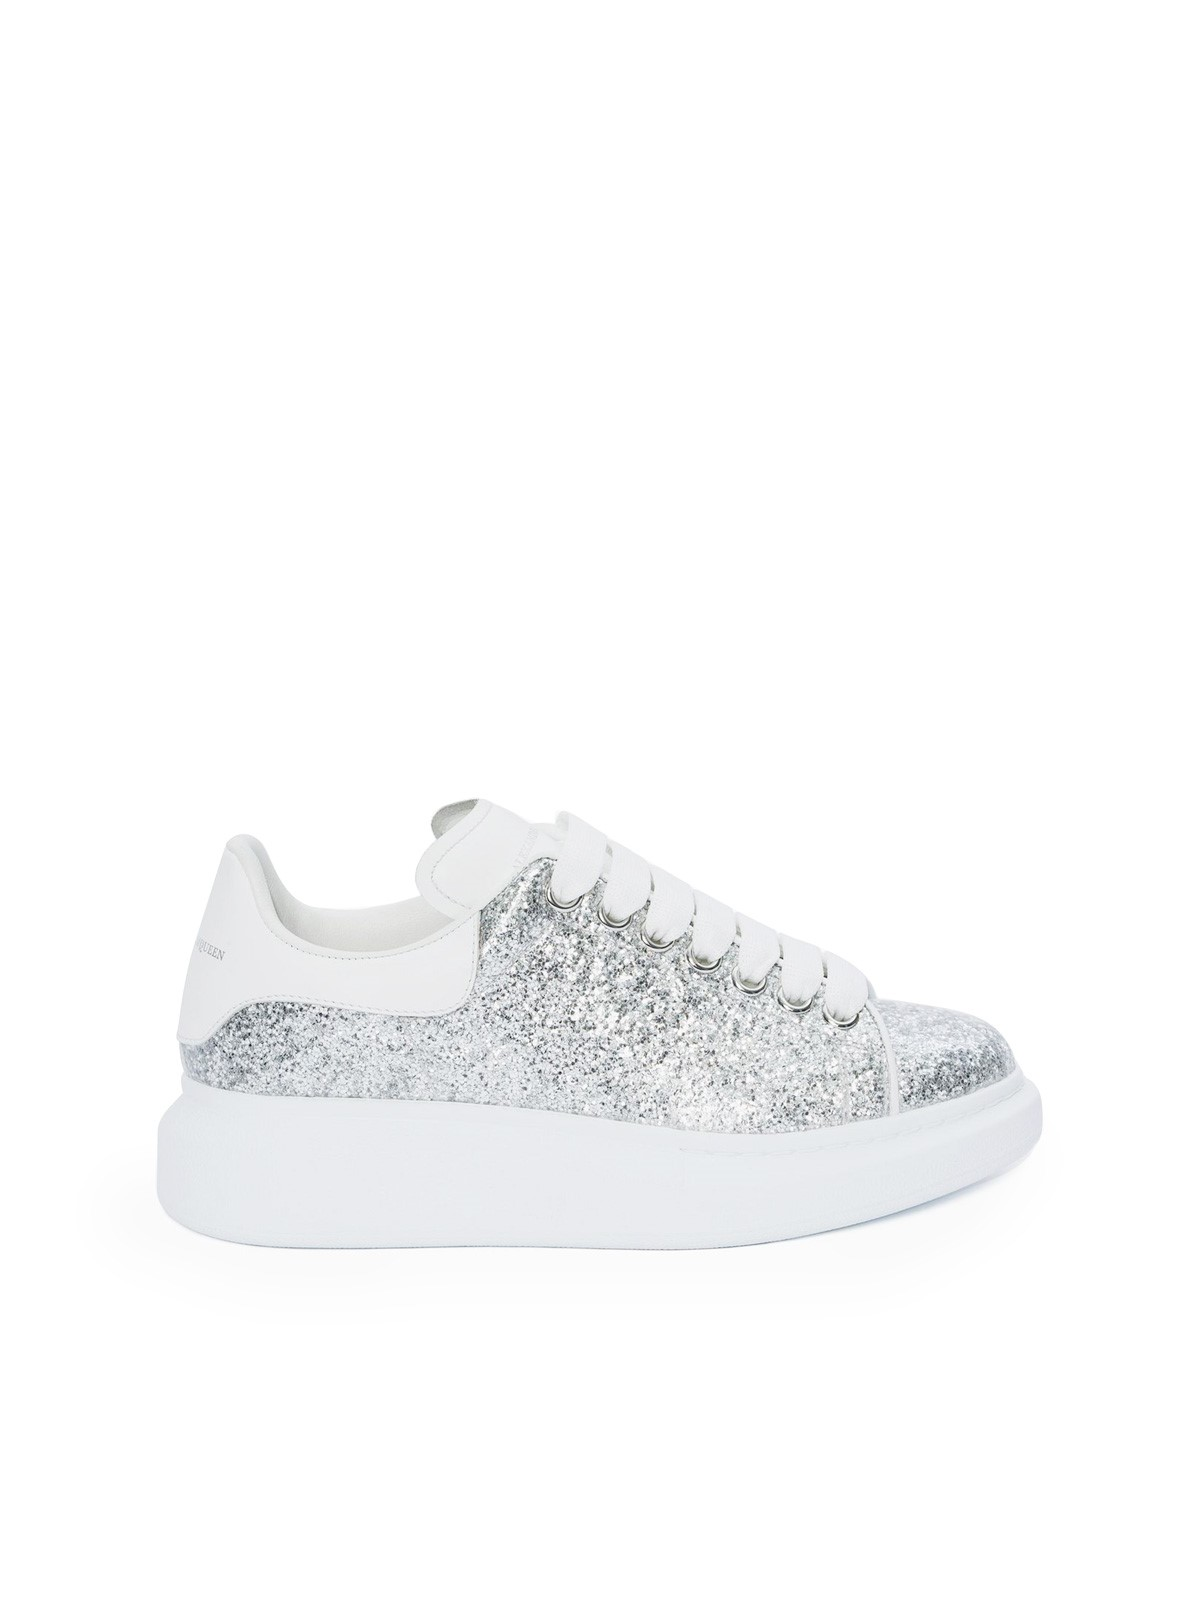 7415831794b3 alexander mcqueen GLITTER OVERSIZE SNEAKERS available on ...